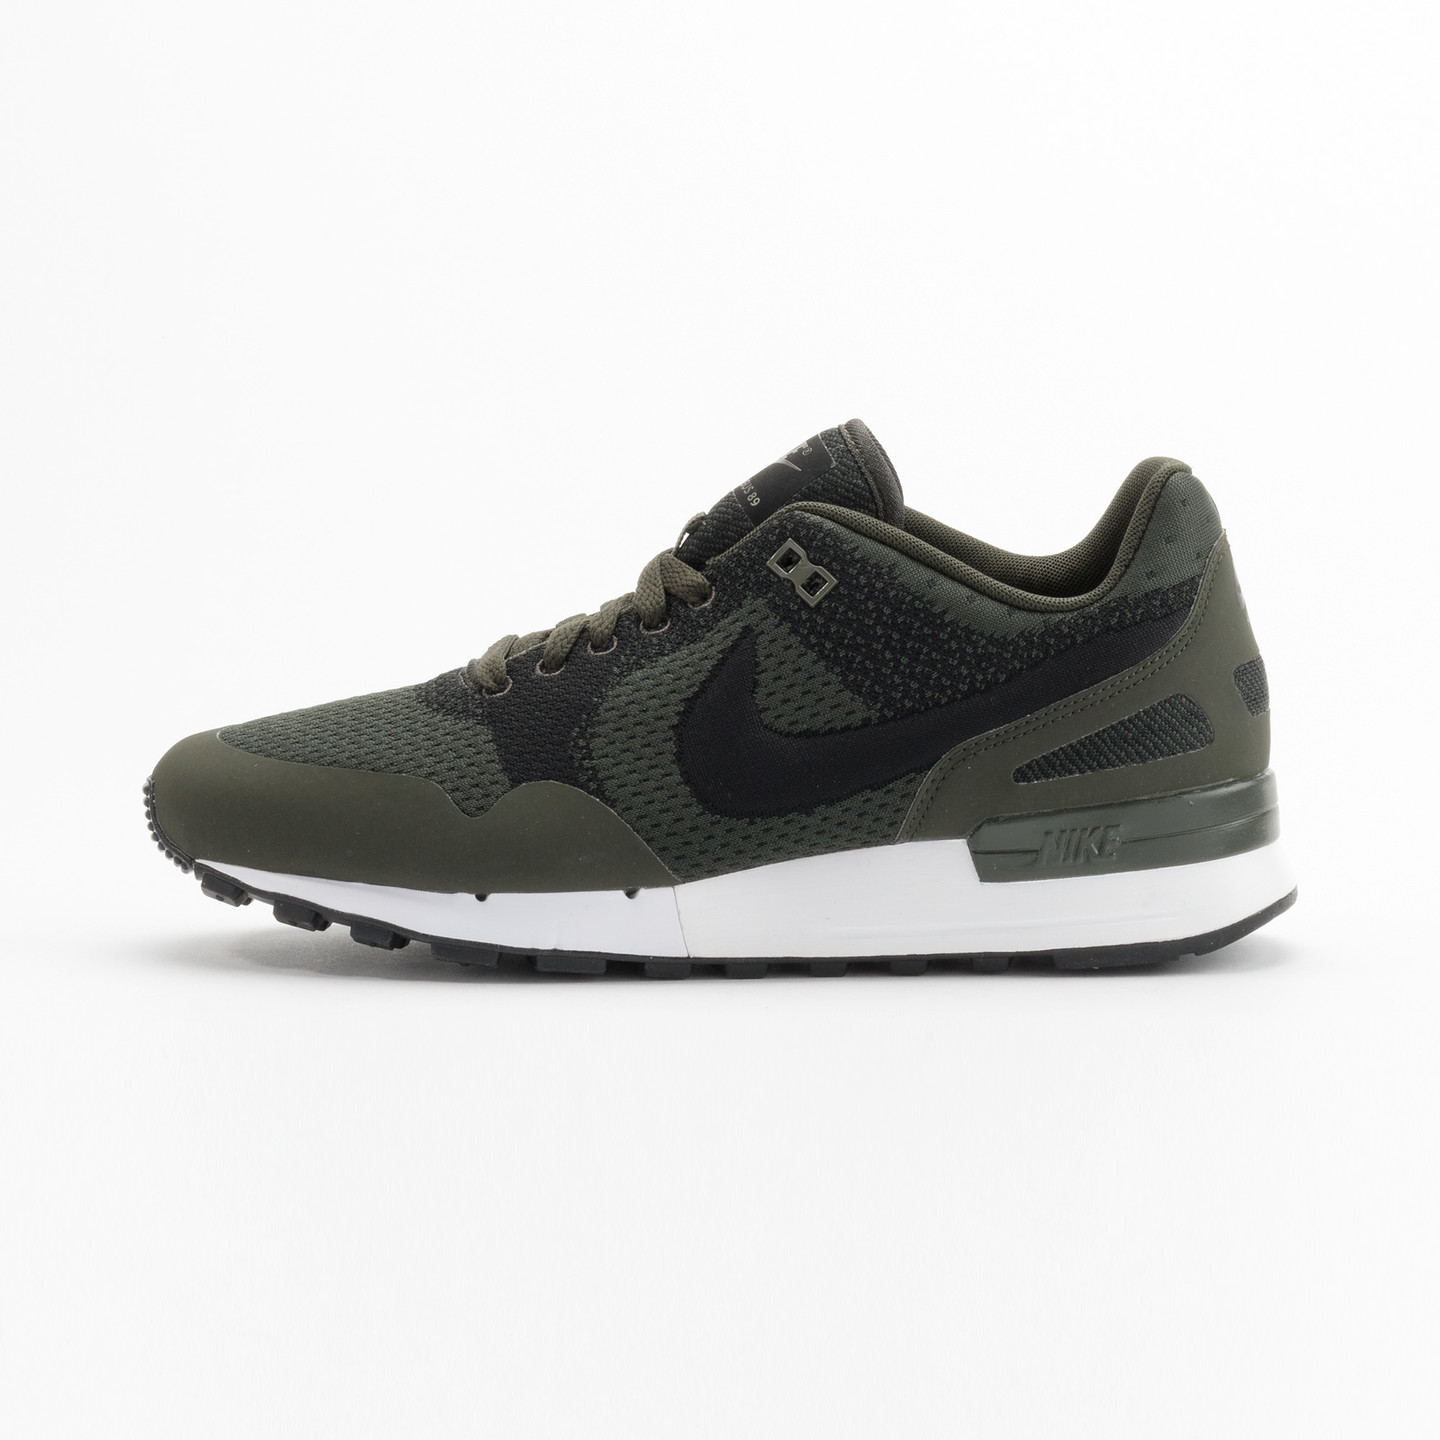 Nike Air Pegasus ´89 Jacquard Sequoia / Black / White 844751-300-45